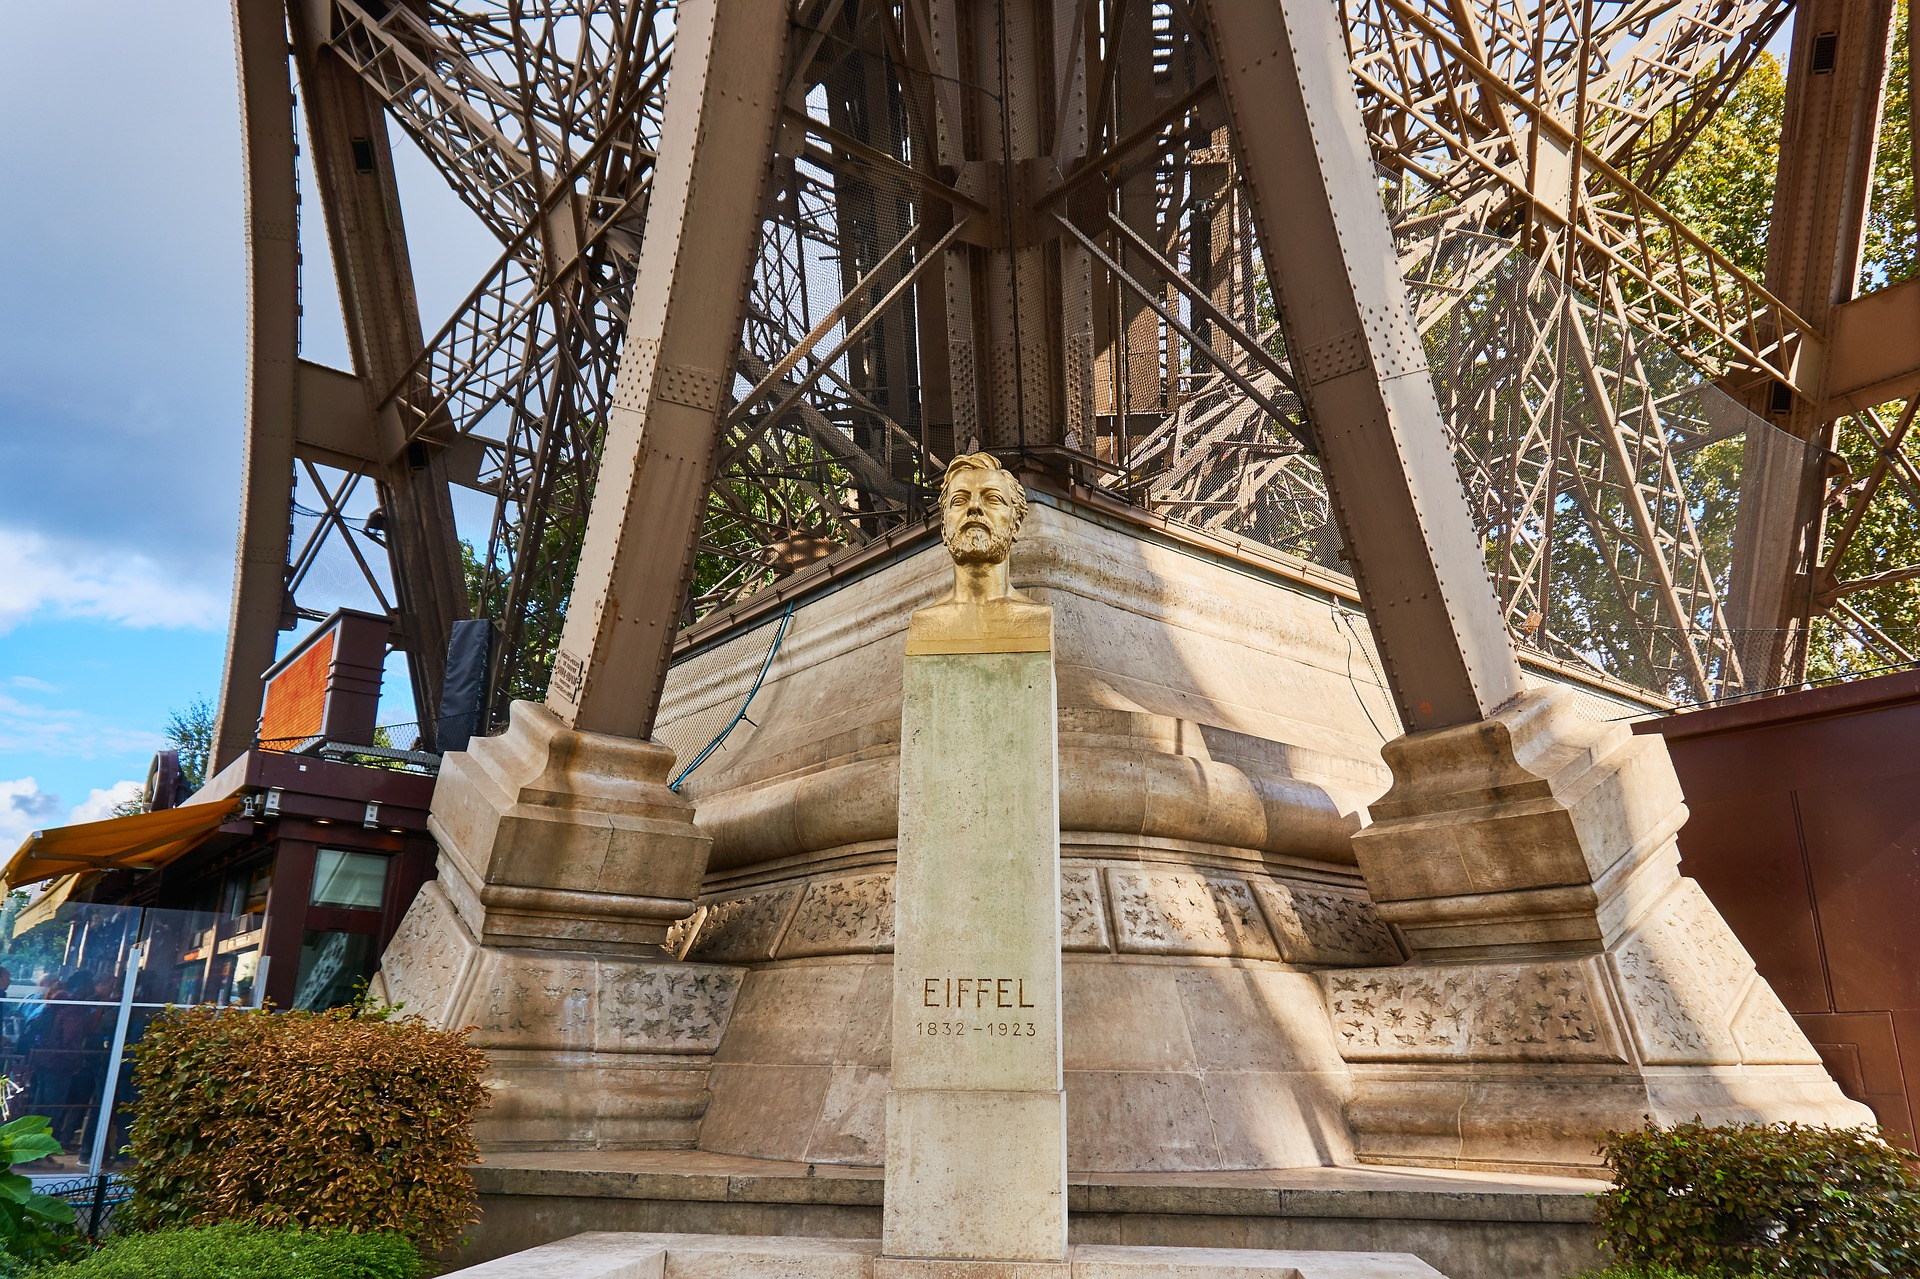 Gustave Eiffel statue in front of the Eiffel Tower in Paris, France